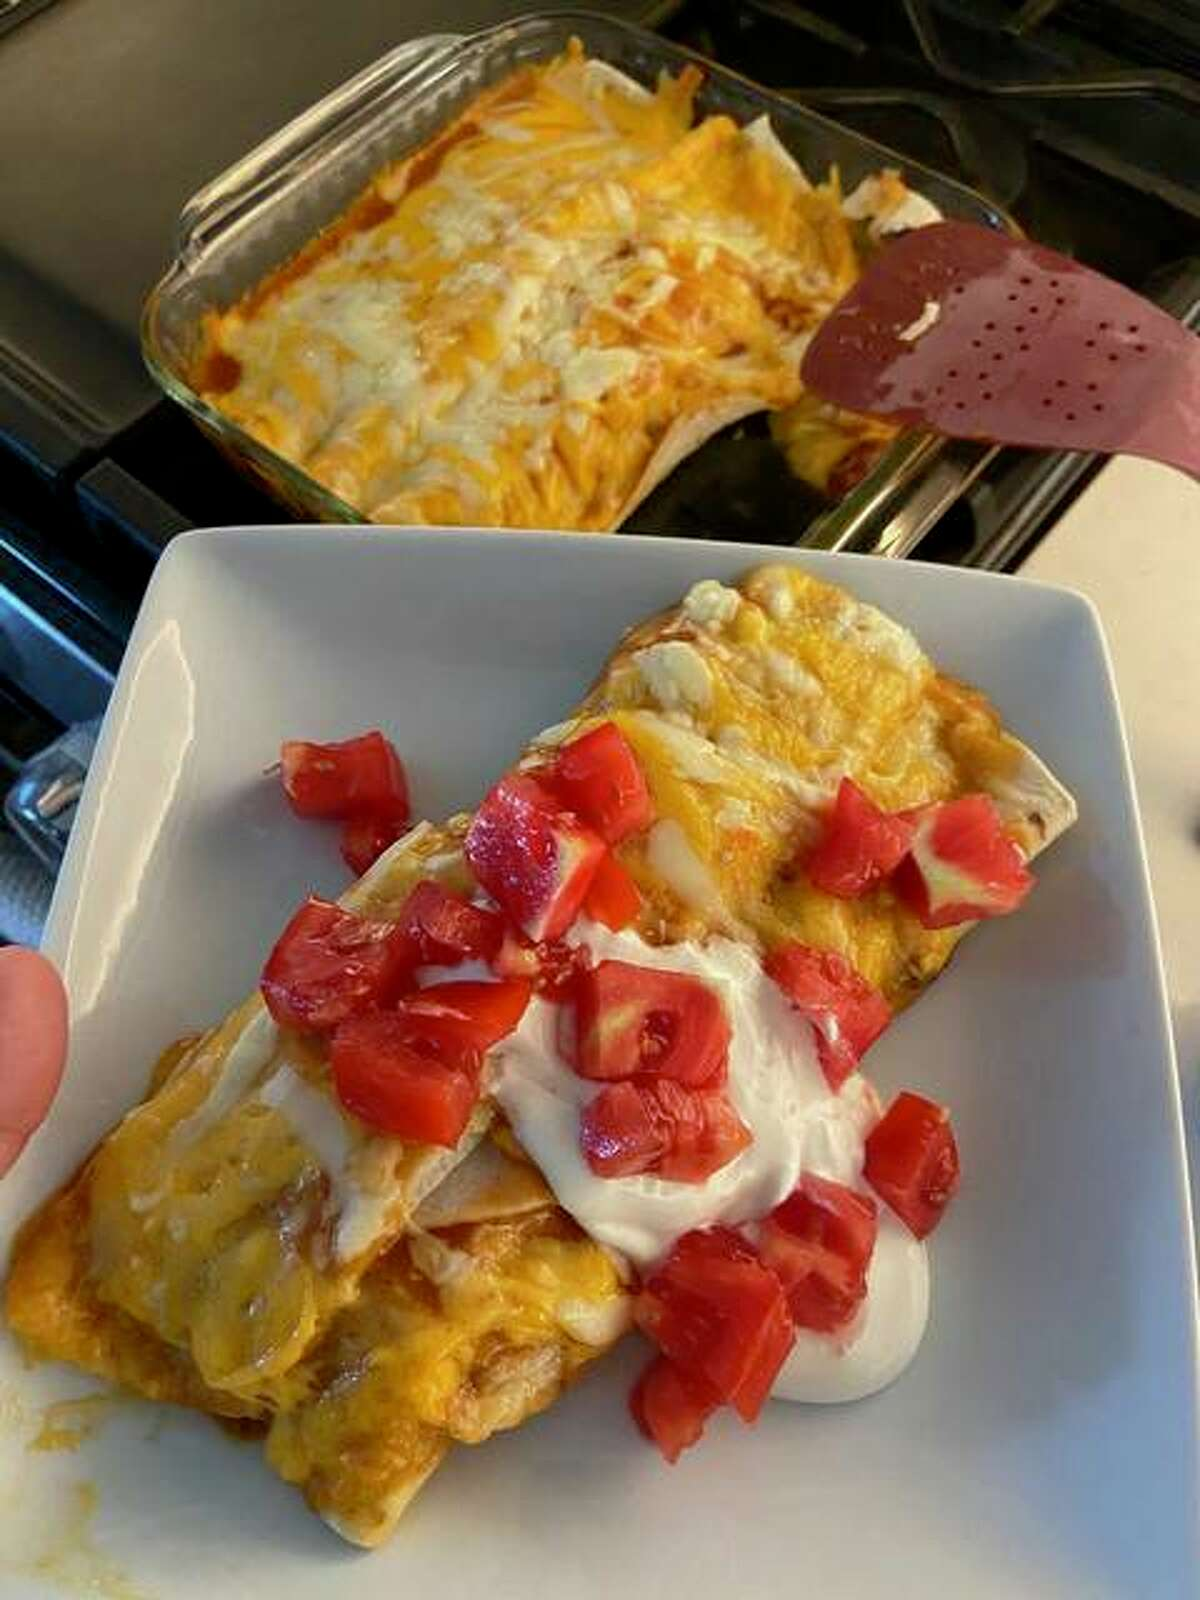 Tex-Mex Enchiladas make for a quick meal during the weekday.